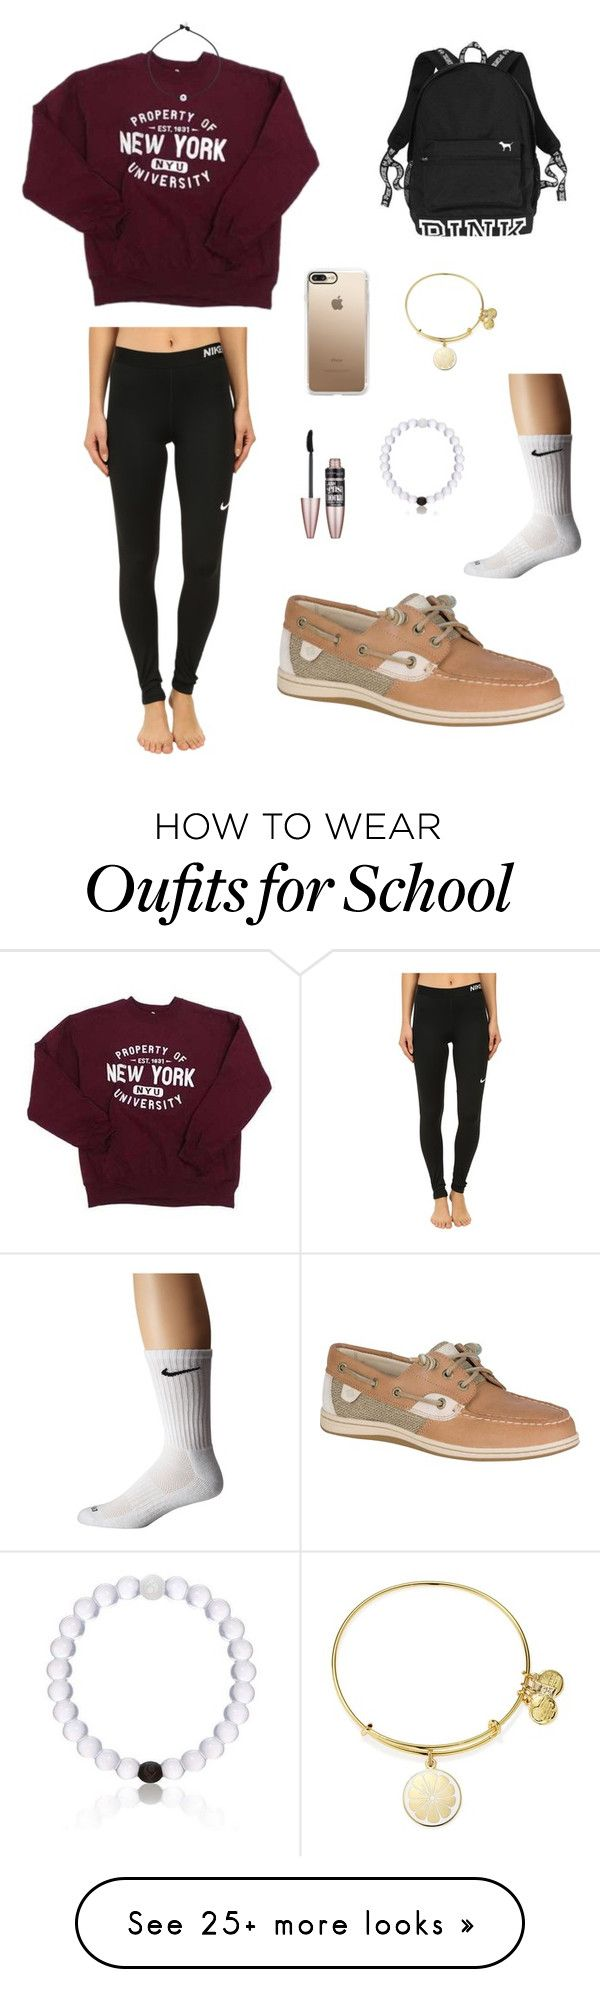 """Comfy School Outfit !!"" by ekrischan on Polyvore featuring NIKE, Sperry, Casetify, Maybelline, Alex and Ani and Victoria's Secret"